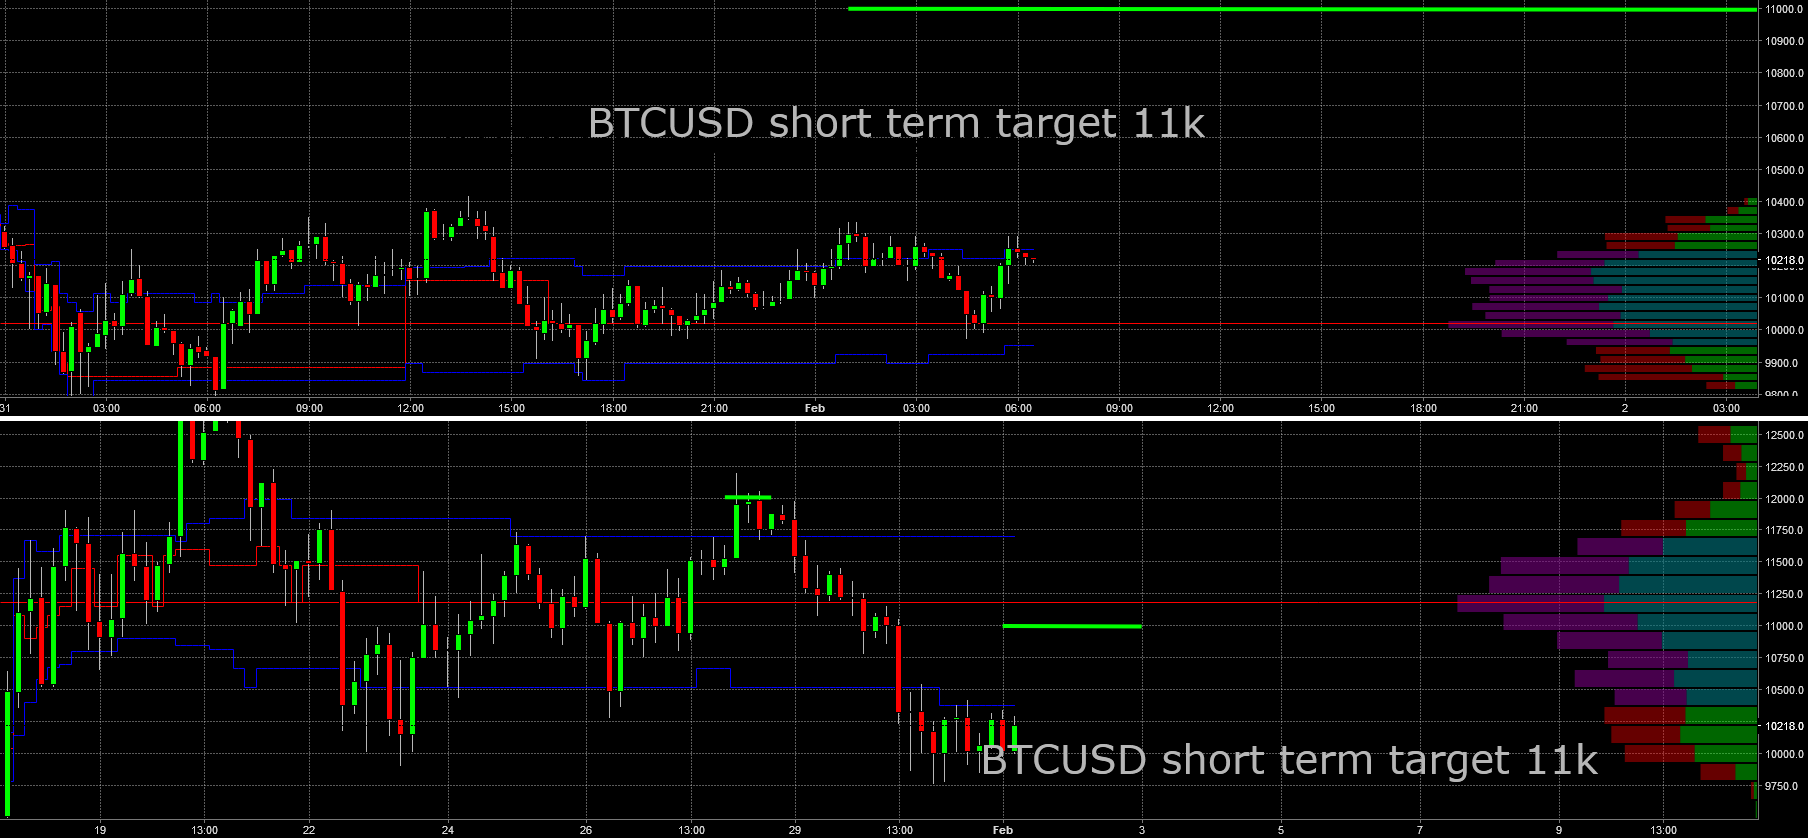 BTCUSD: Short term up side Potentioal to 11k